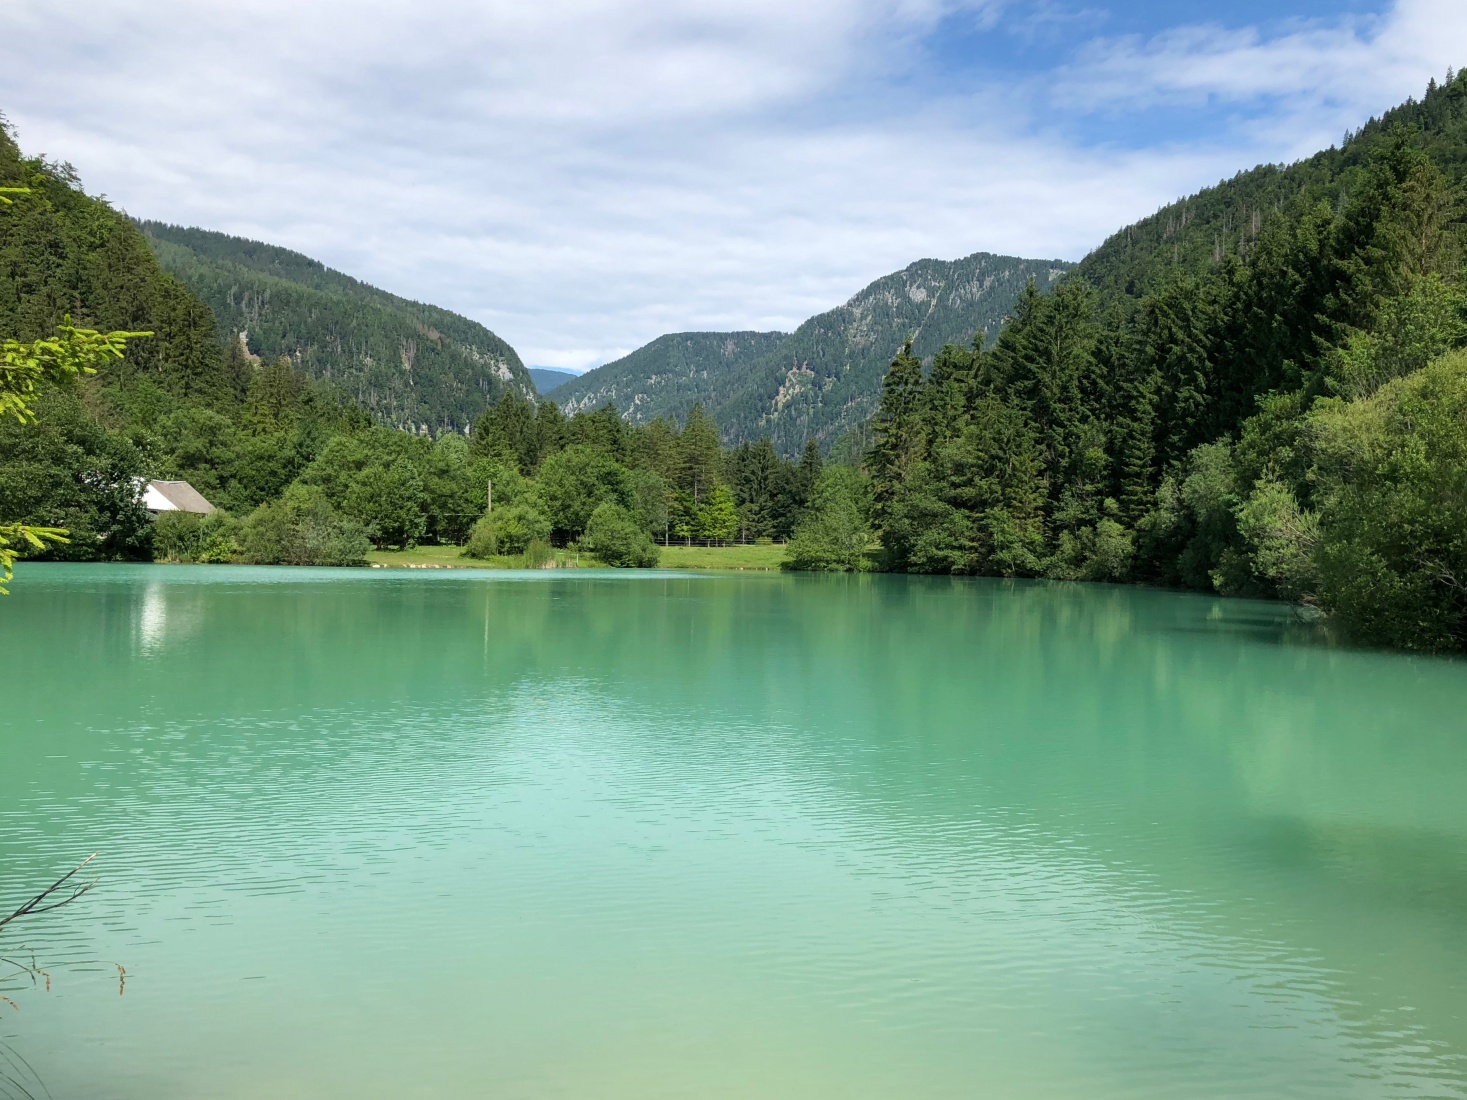 Green, emerald, colored water at Lake Bled, Slovenia.